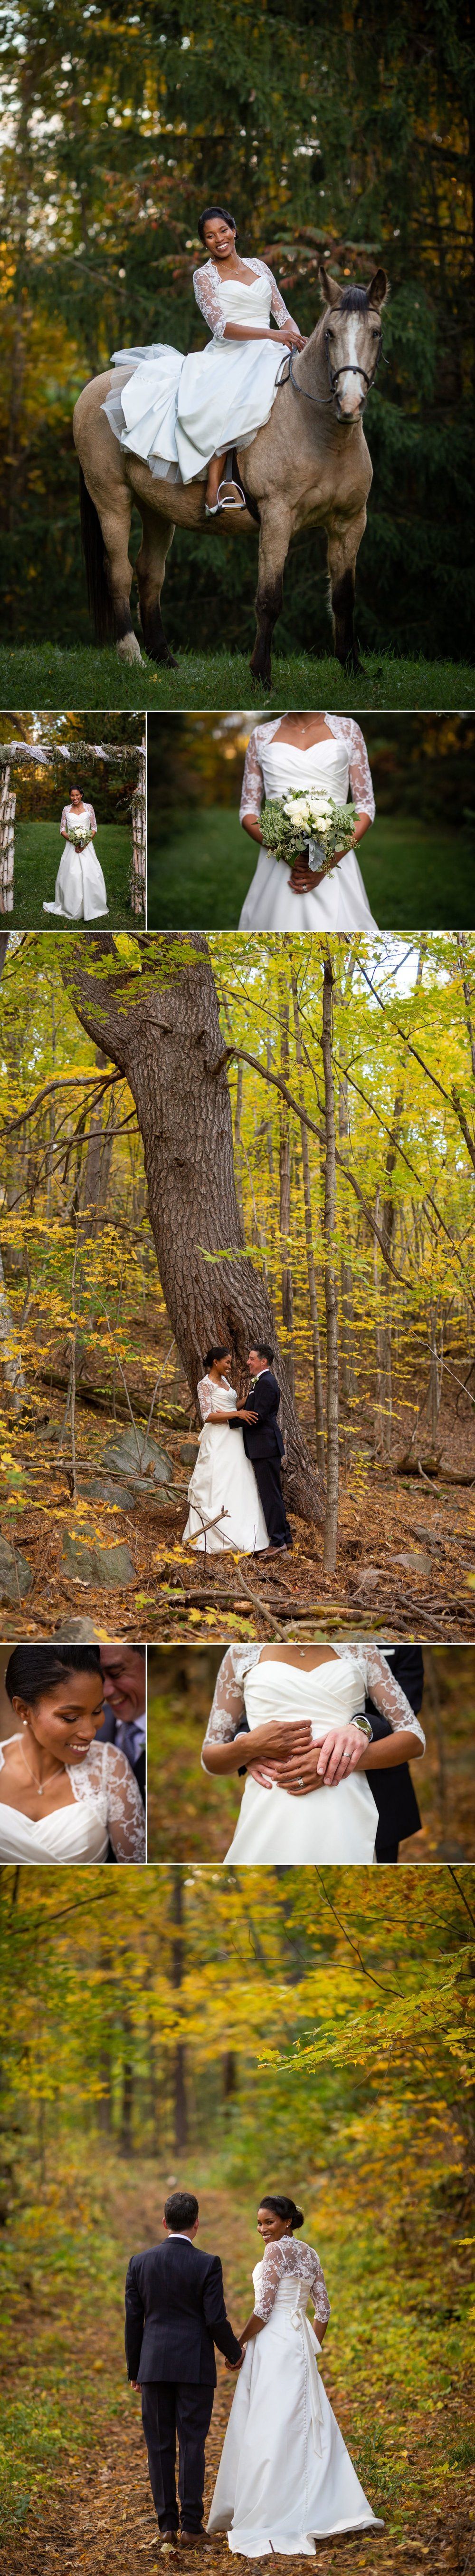 Portraits of the bride and groom taken after their outdoor fall wedding ceremony at their family farm